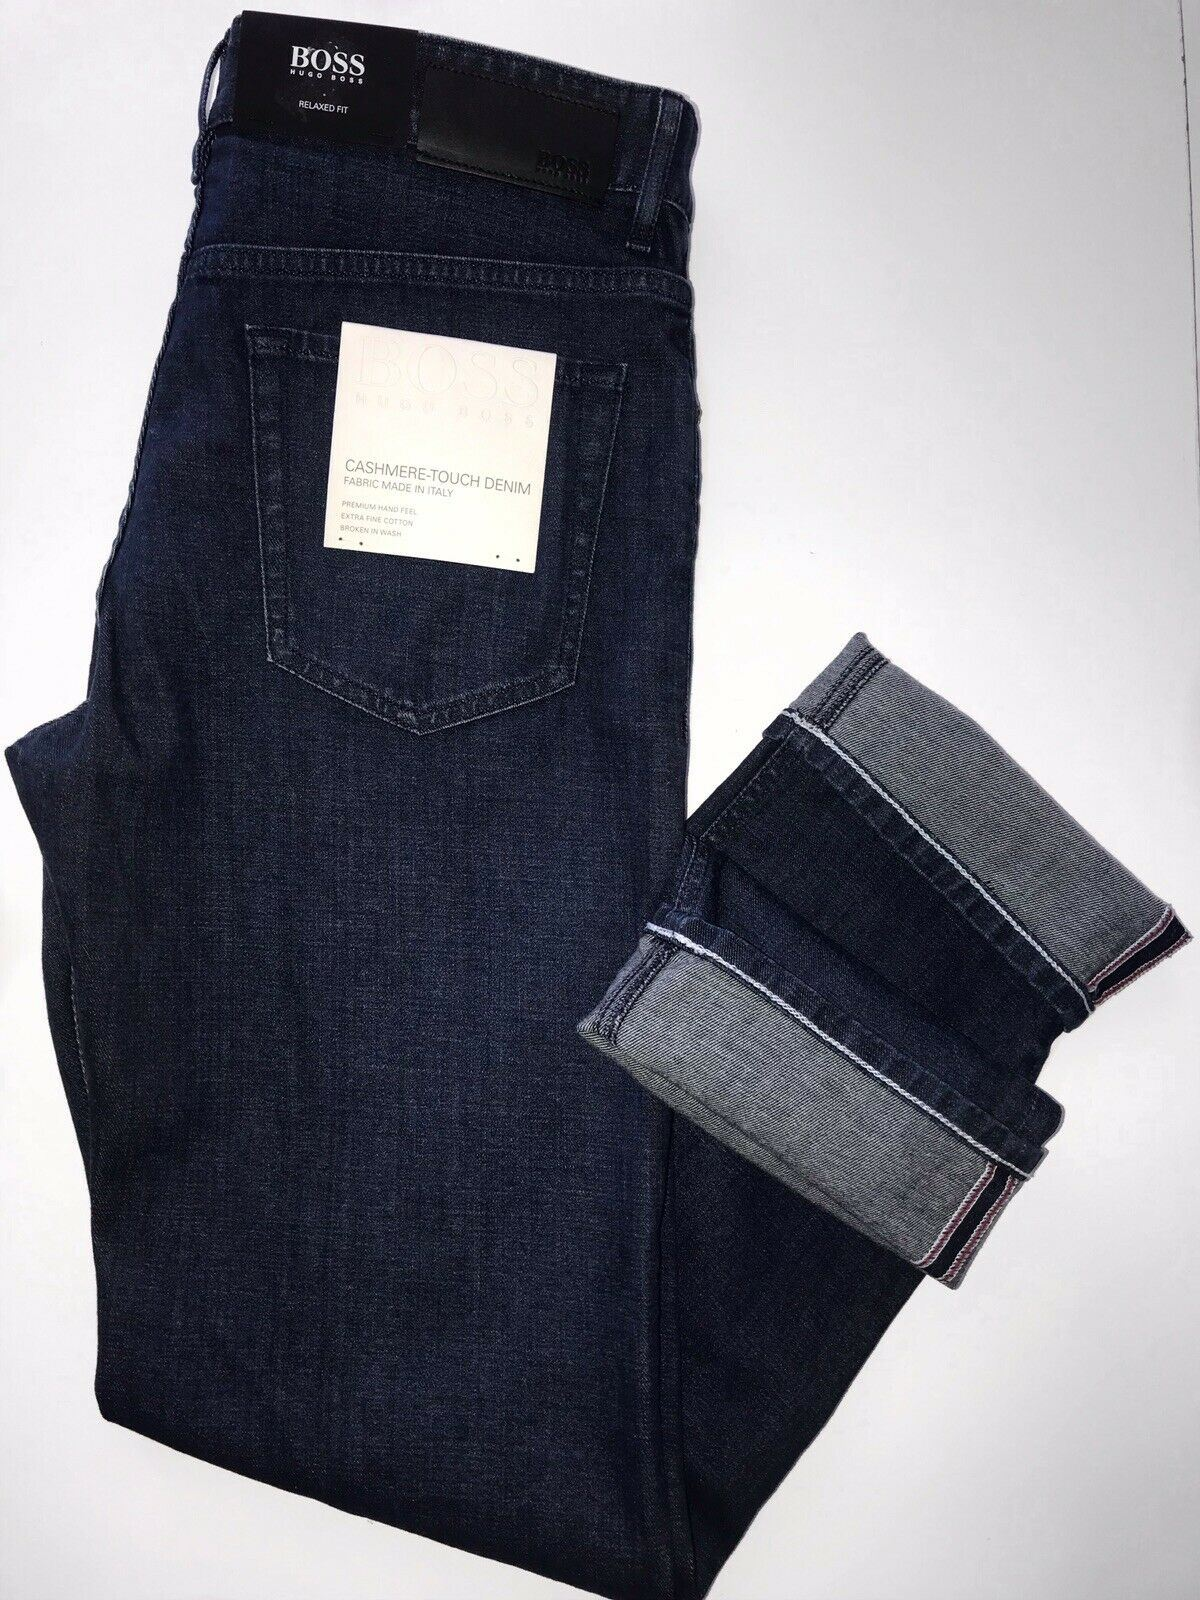 NWT $178 Hugo Boss Men/'s Albany Relaxed Fit Cotton Navy Denim Jeans Size 33//32